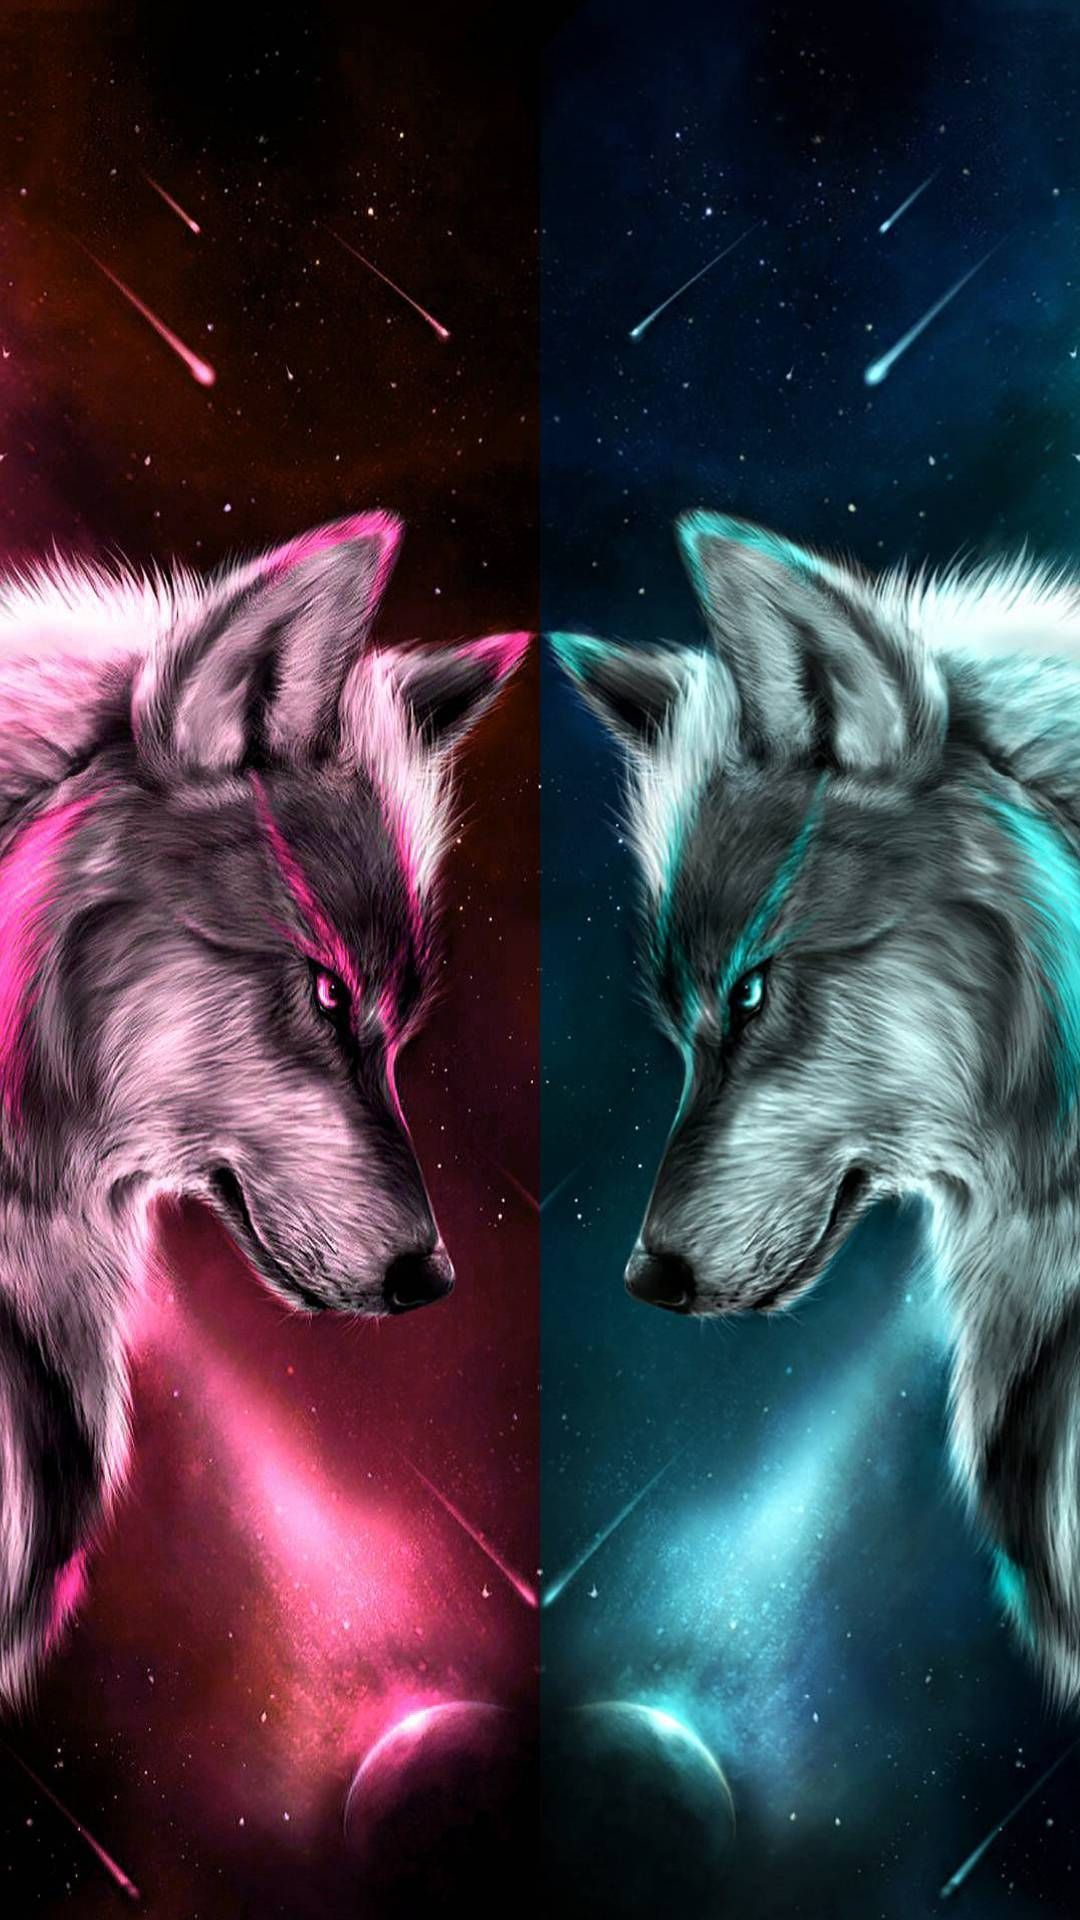 Great 5 Epic Wolf Wallpaper High Definition For Your Android Or Iphone Wallpapers Android Iphone Wallpaper Wolf Background Wolf Artwork Wolf Wallpaper